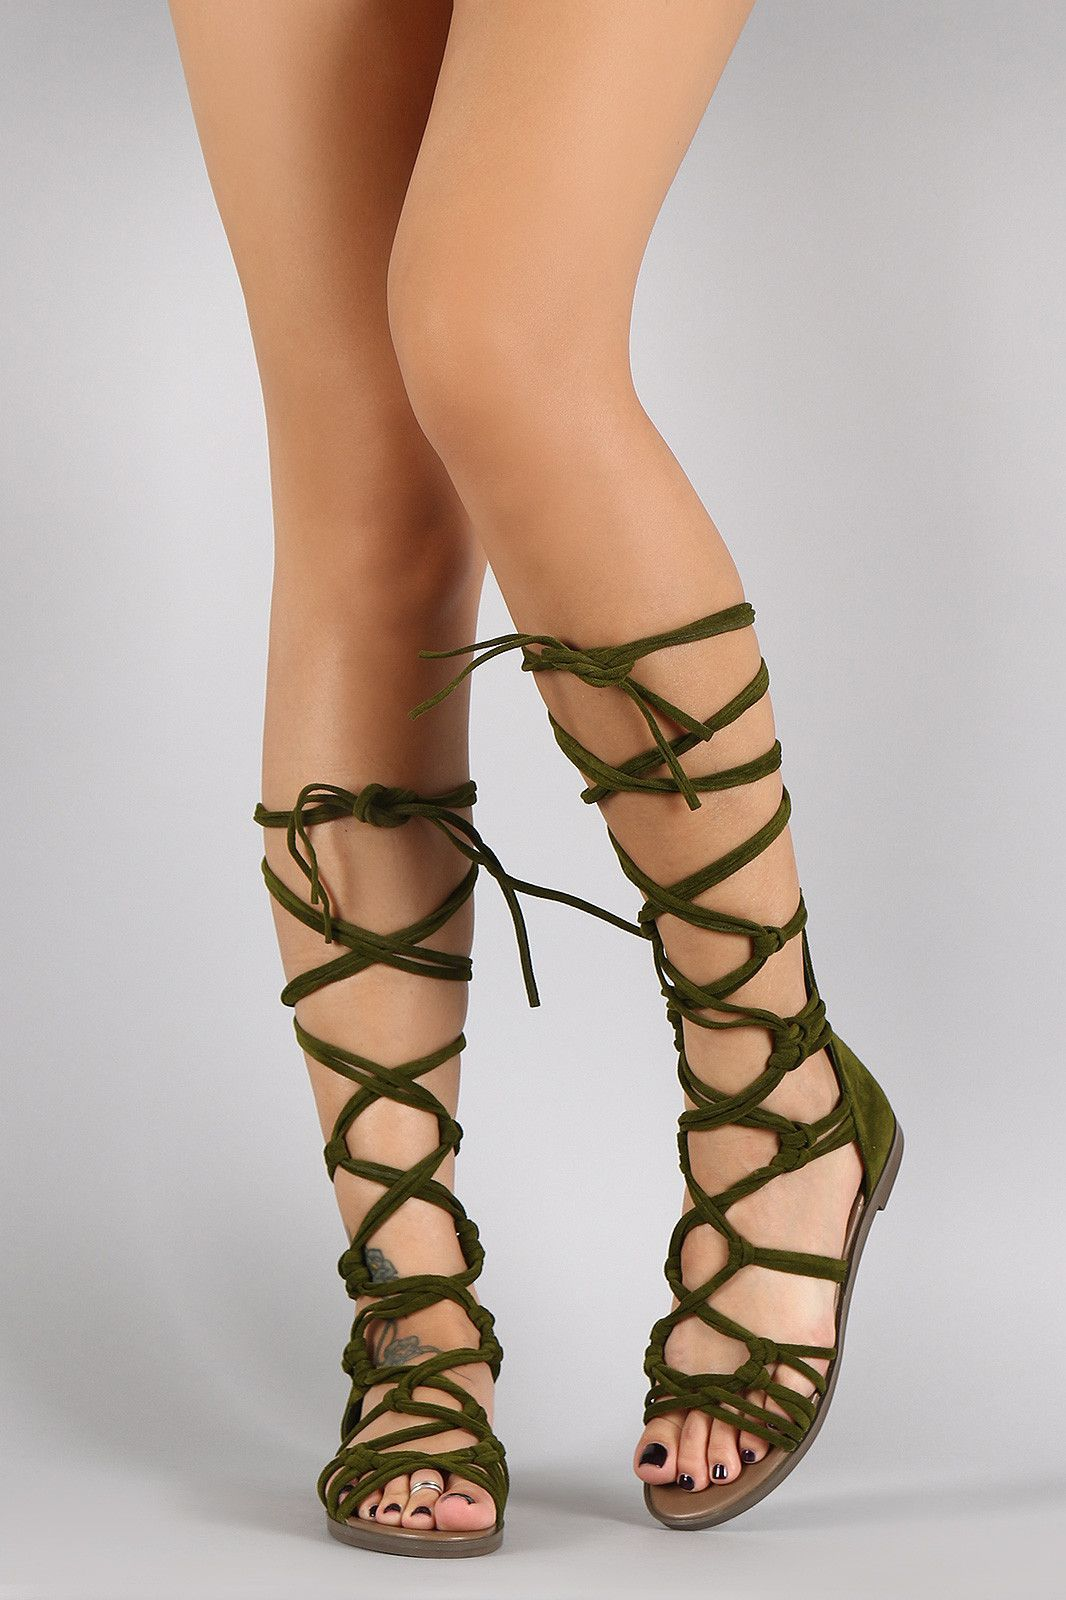 854dd5eabcabd Breckelle Strappy Knotted Lace Up Gladiator Flat Sandal